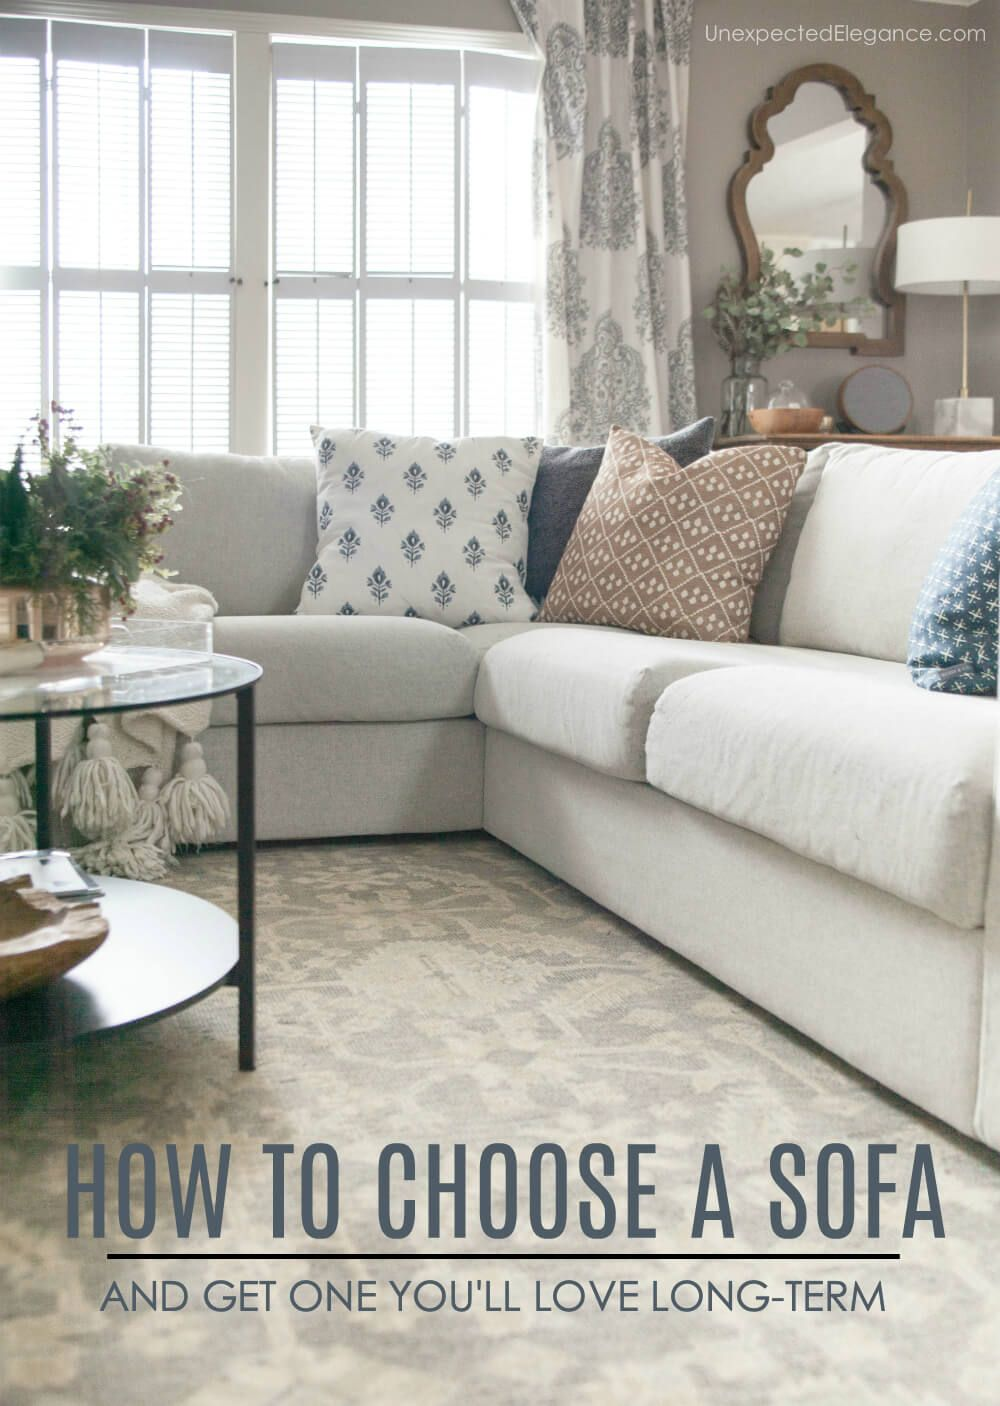 How To Choose A Sofa That Fits Your Space And Style Sofa Colors Couch Styling Living Room Cabinets